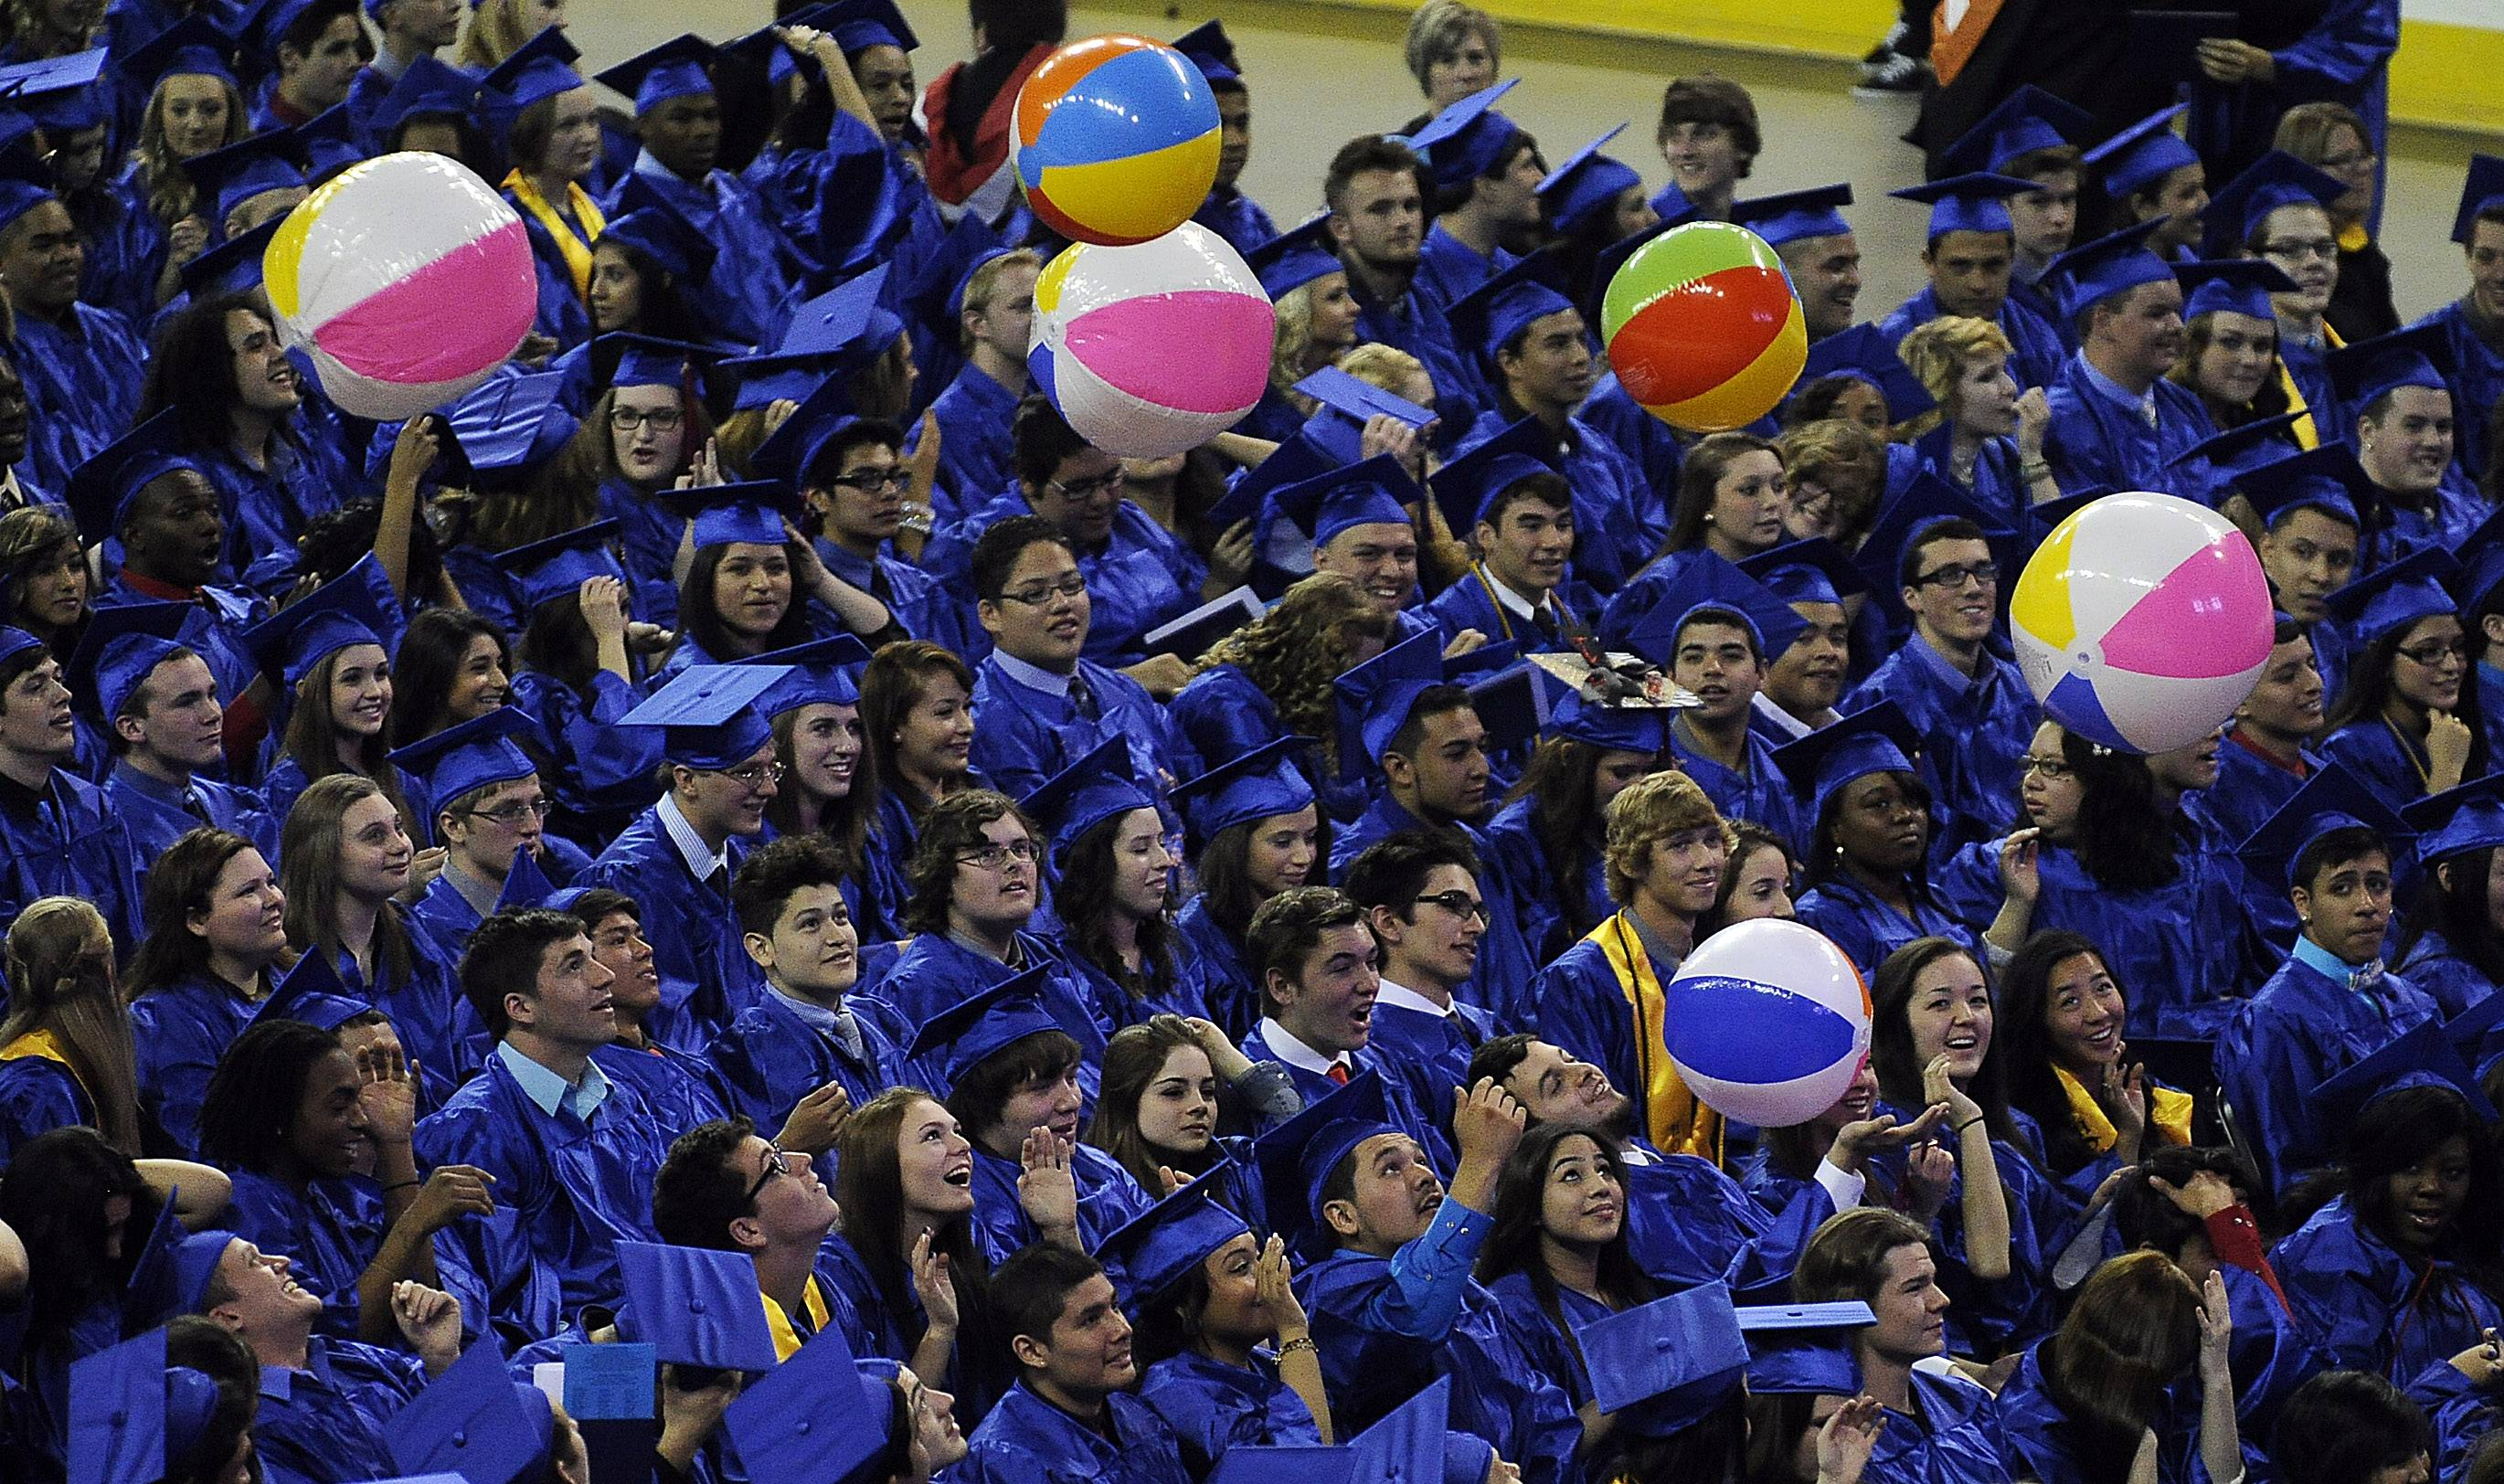 Let the party begin as the beach balls fly at the 31st Annual Commencement of Dundee-Crown High School at the Sears Centre in Hoffman Estates on Saturday.